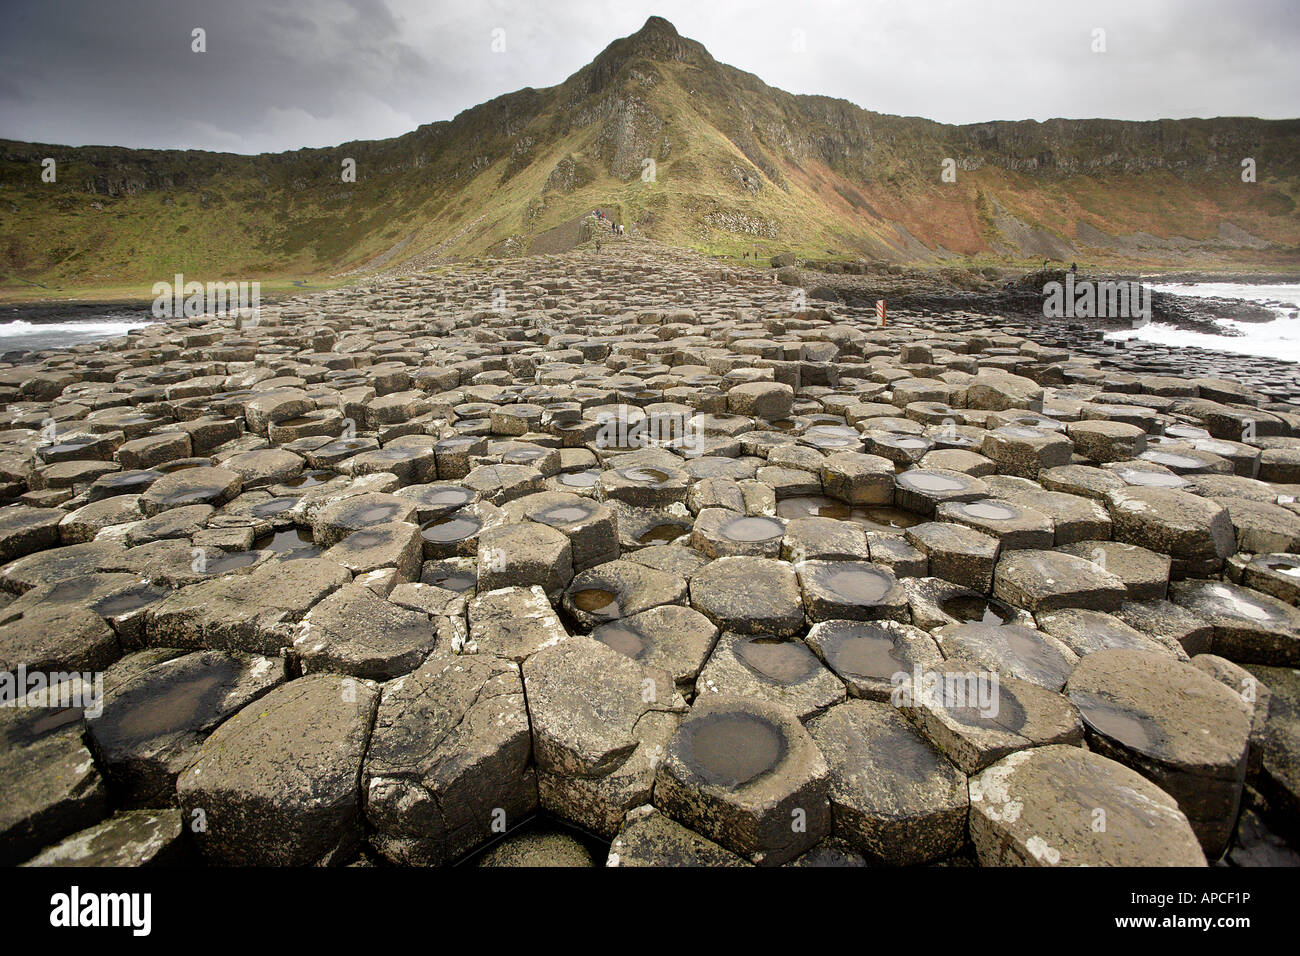 The Giant's Causeway is an area of about 40,000 interlocking basalt columns, the result of an ancient volcanic - Stock Image